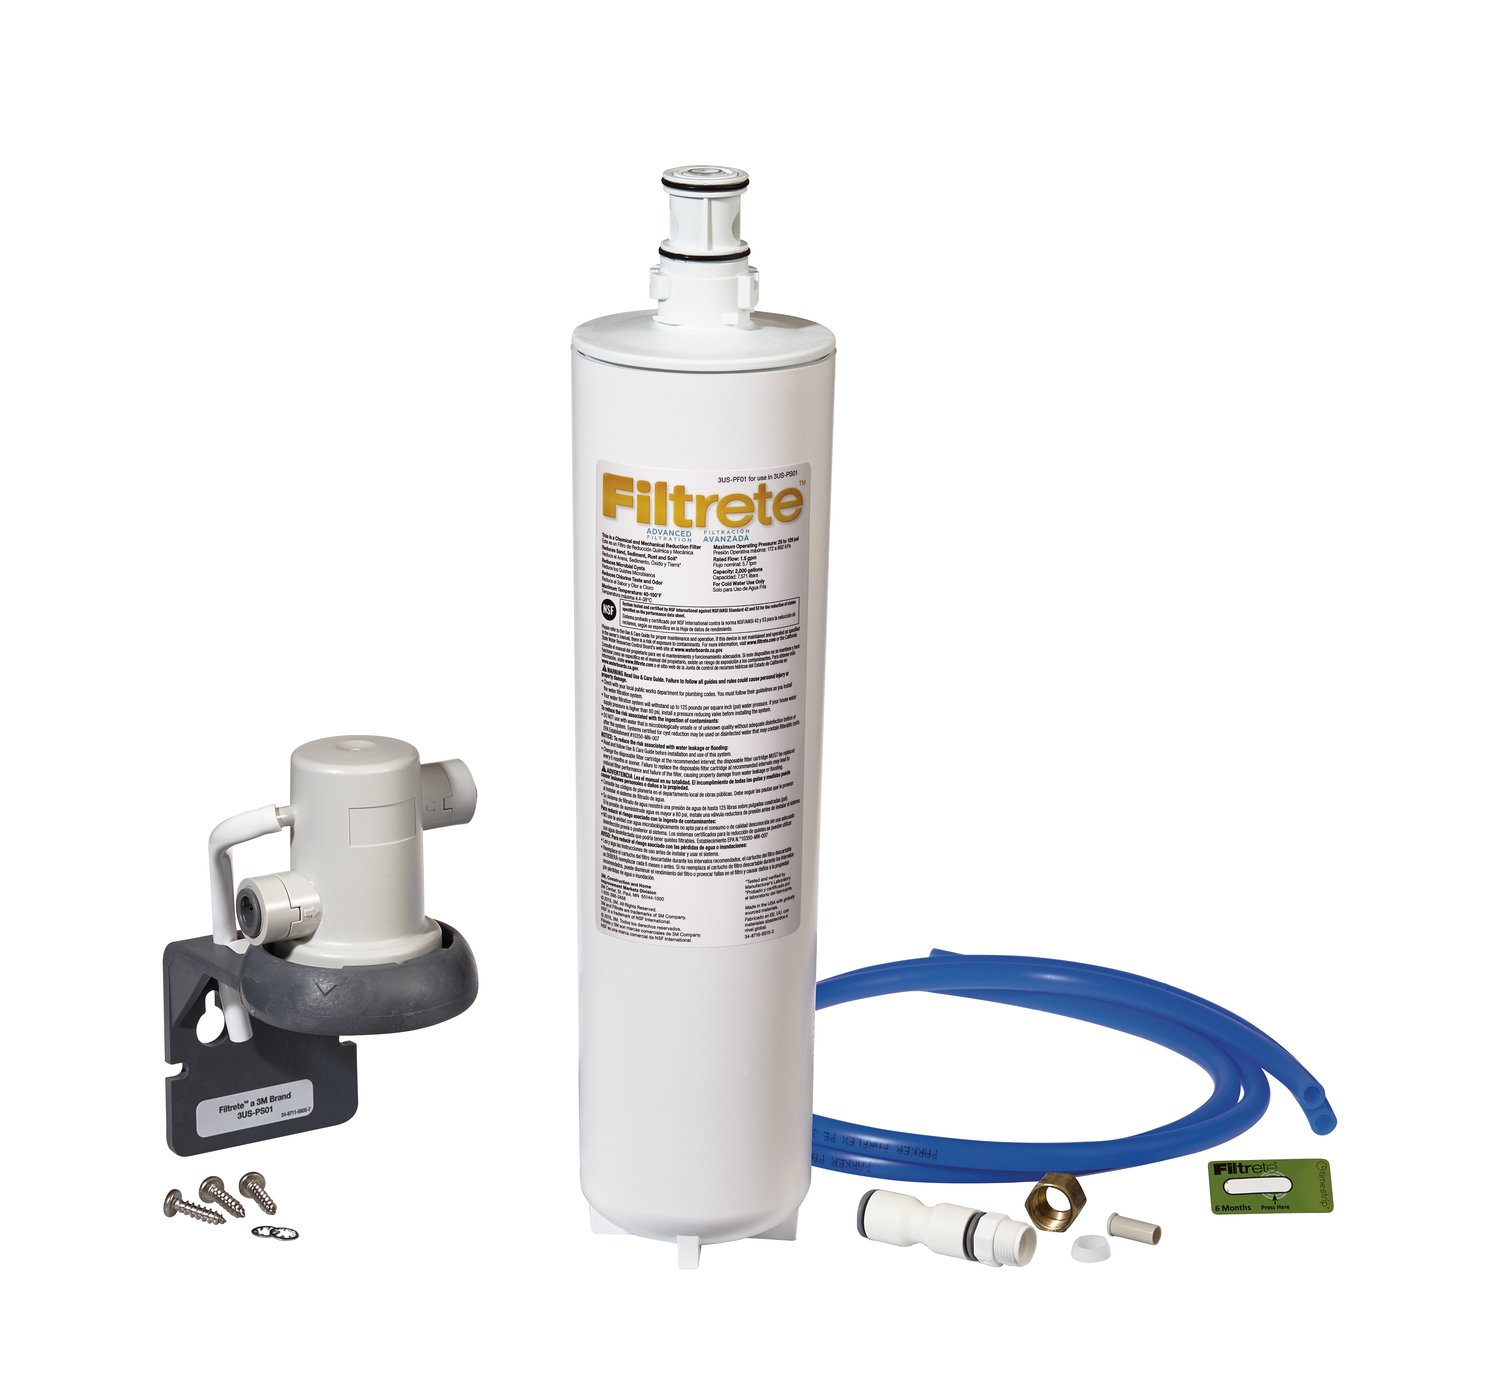 Filtrete Advanced Under Sink Quick Change Water Filtration System, Easy to Install, Reduces 0.5 Microns Sediment and Chlorine Taste & Odor, Includes 6 Month Filter (3US-PS01).Manufactured by 3M.